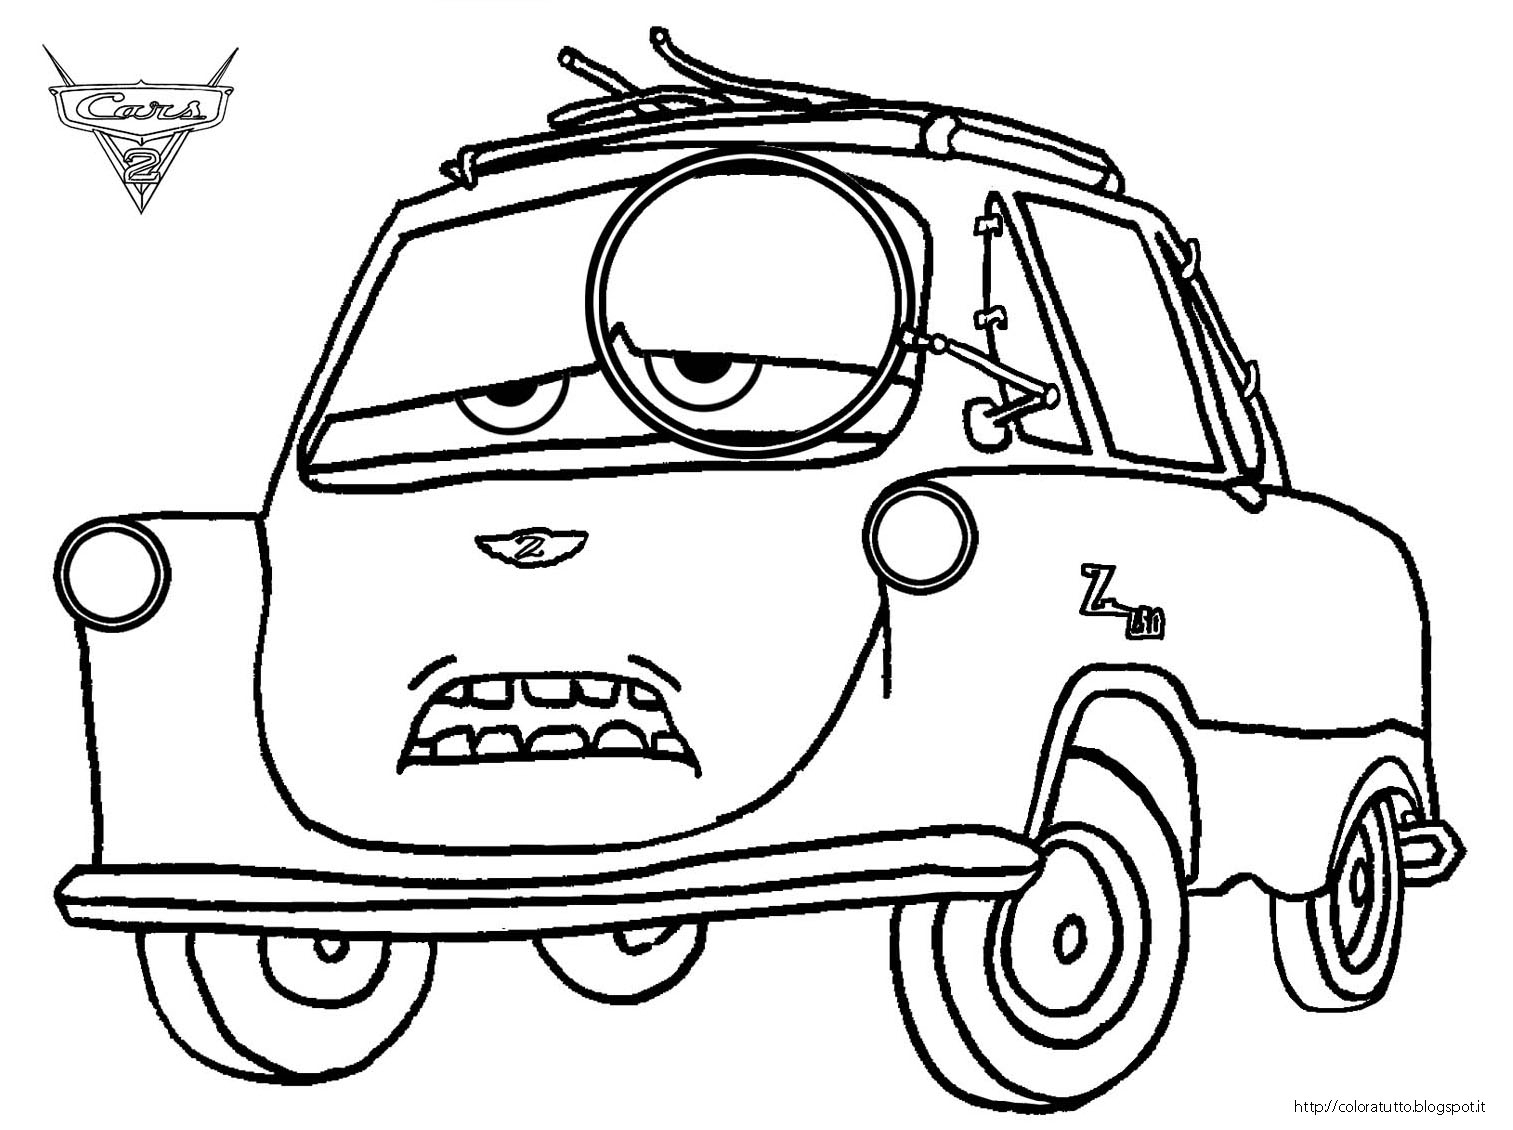 Drawing Cars 2 Cars Coloring Pages Cars 2 Professor Z Coloring Gallery Of Disney Car Coloring Pages Cars Free Download